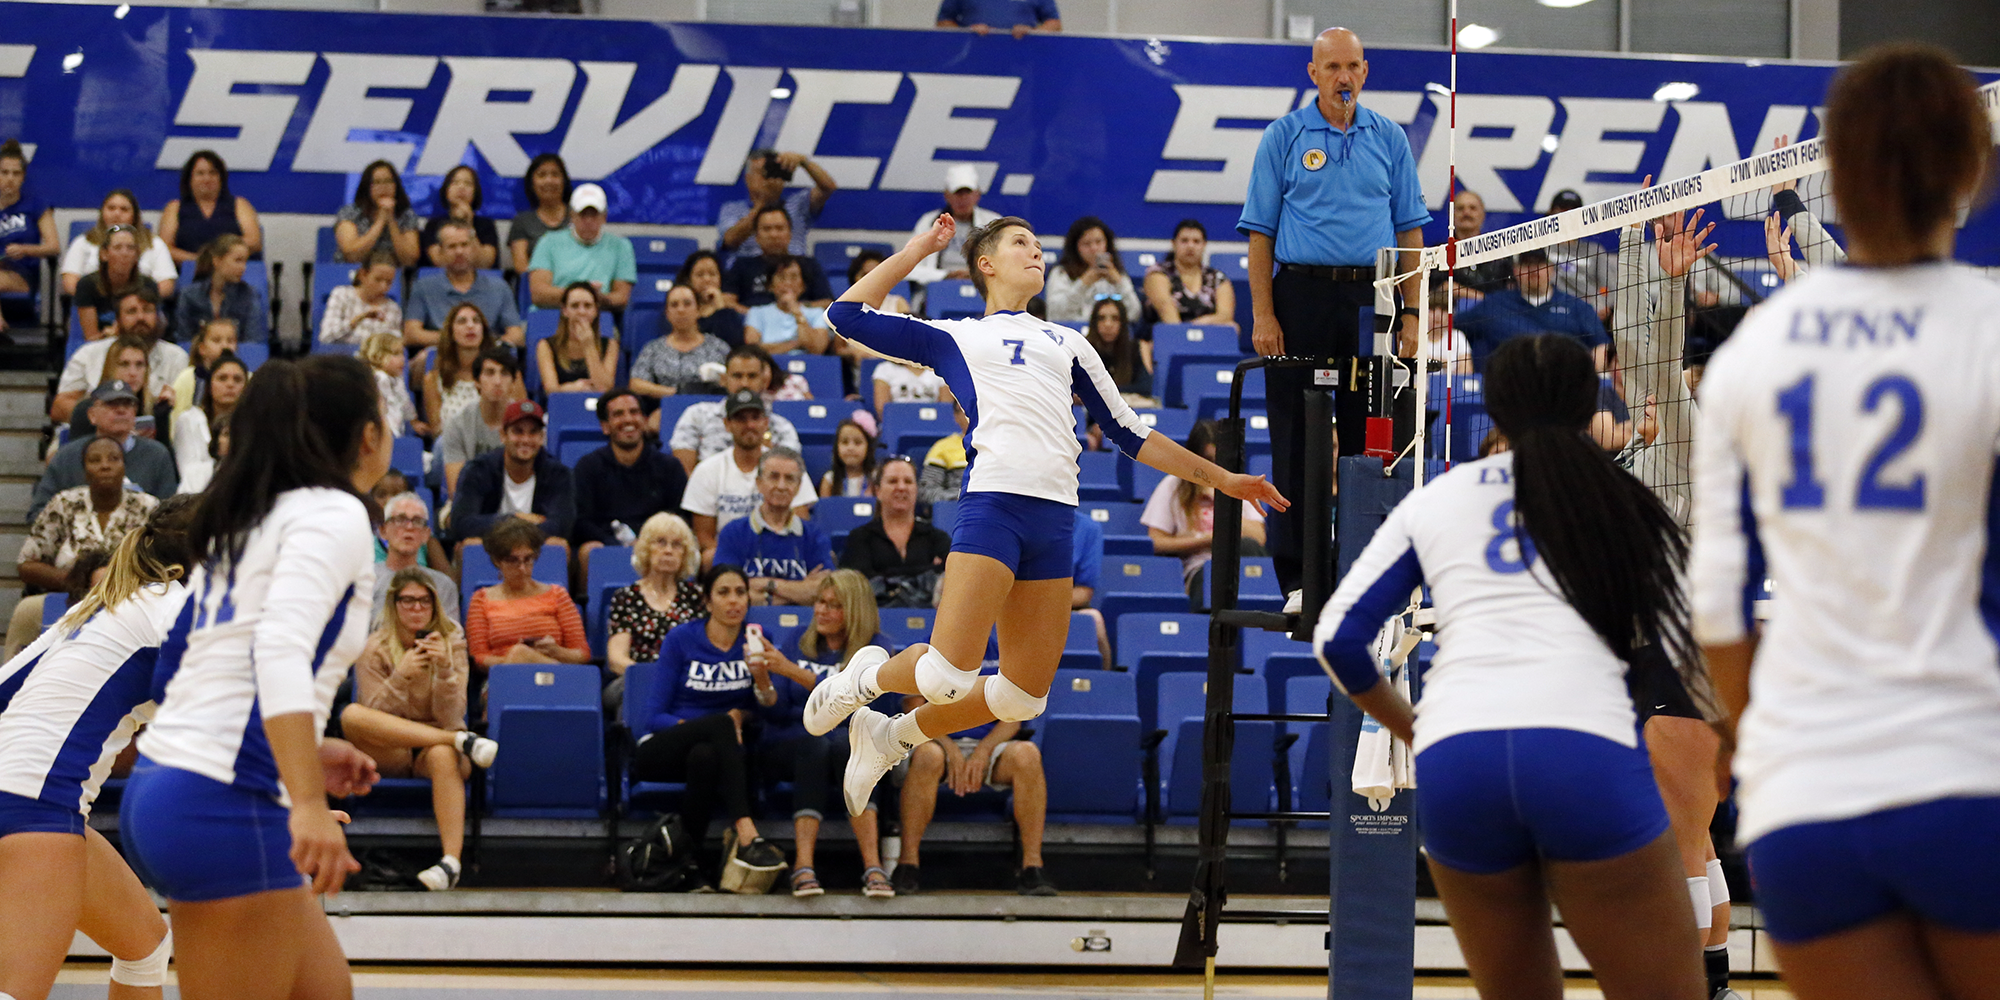 Volleyball's Udovcic Garners SSC Weekly Plaudits